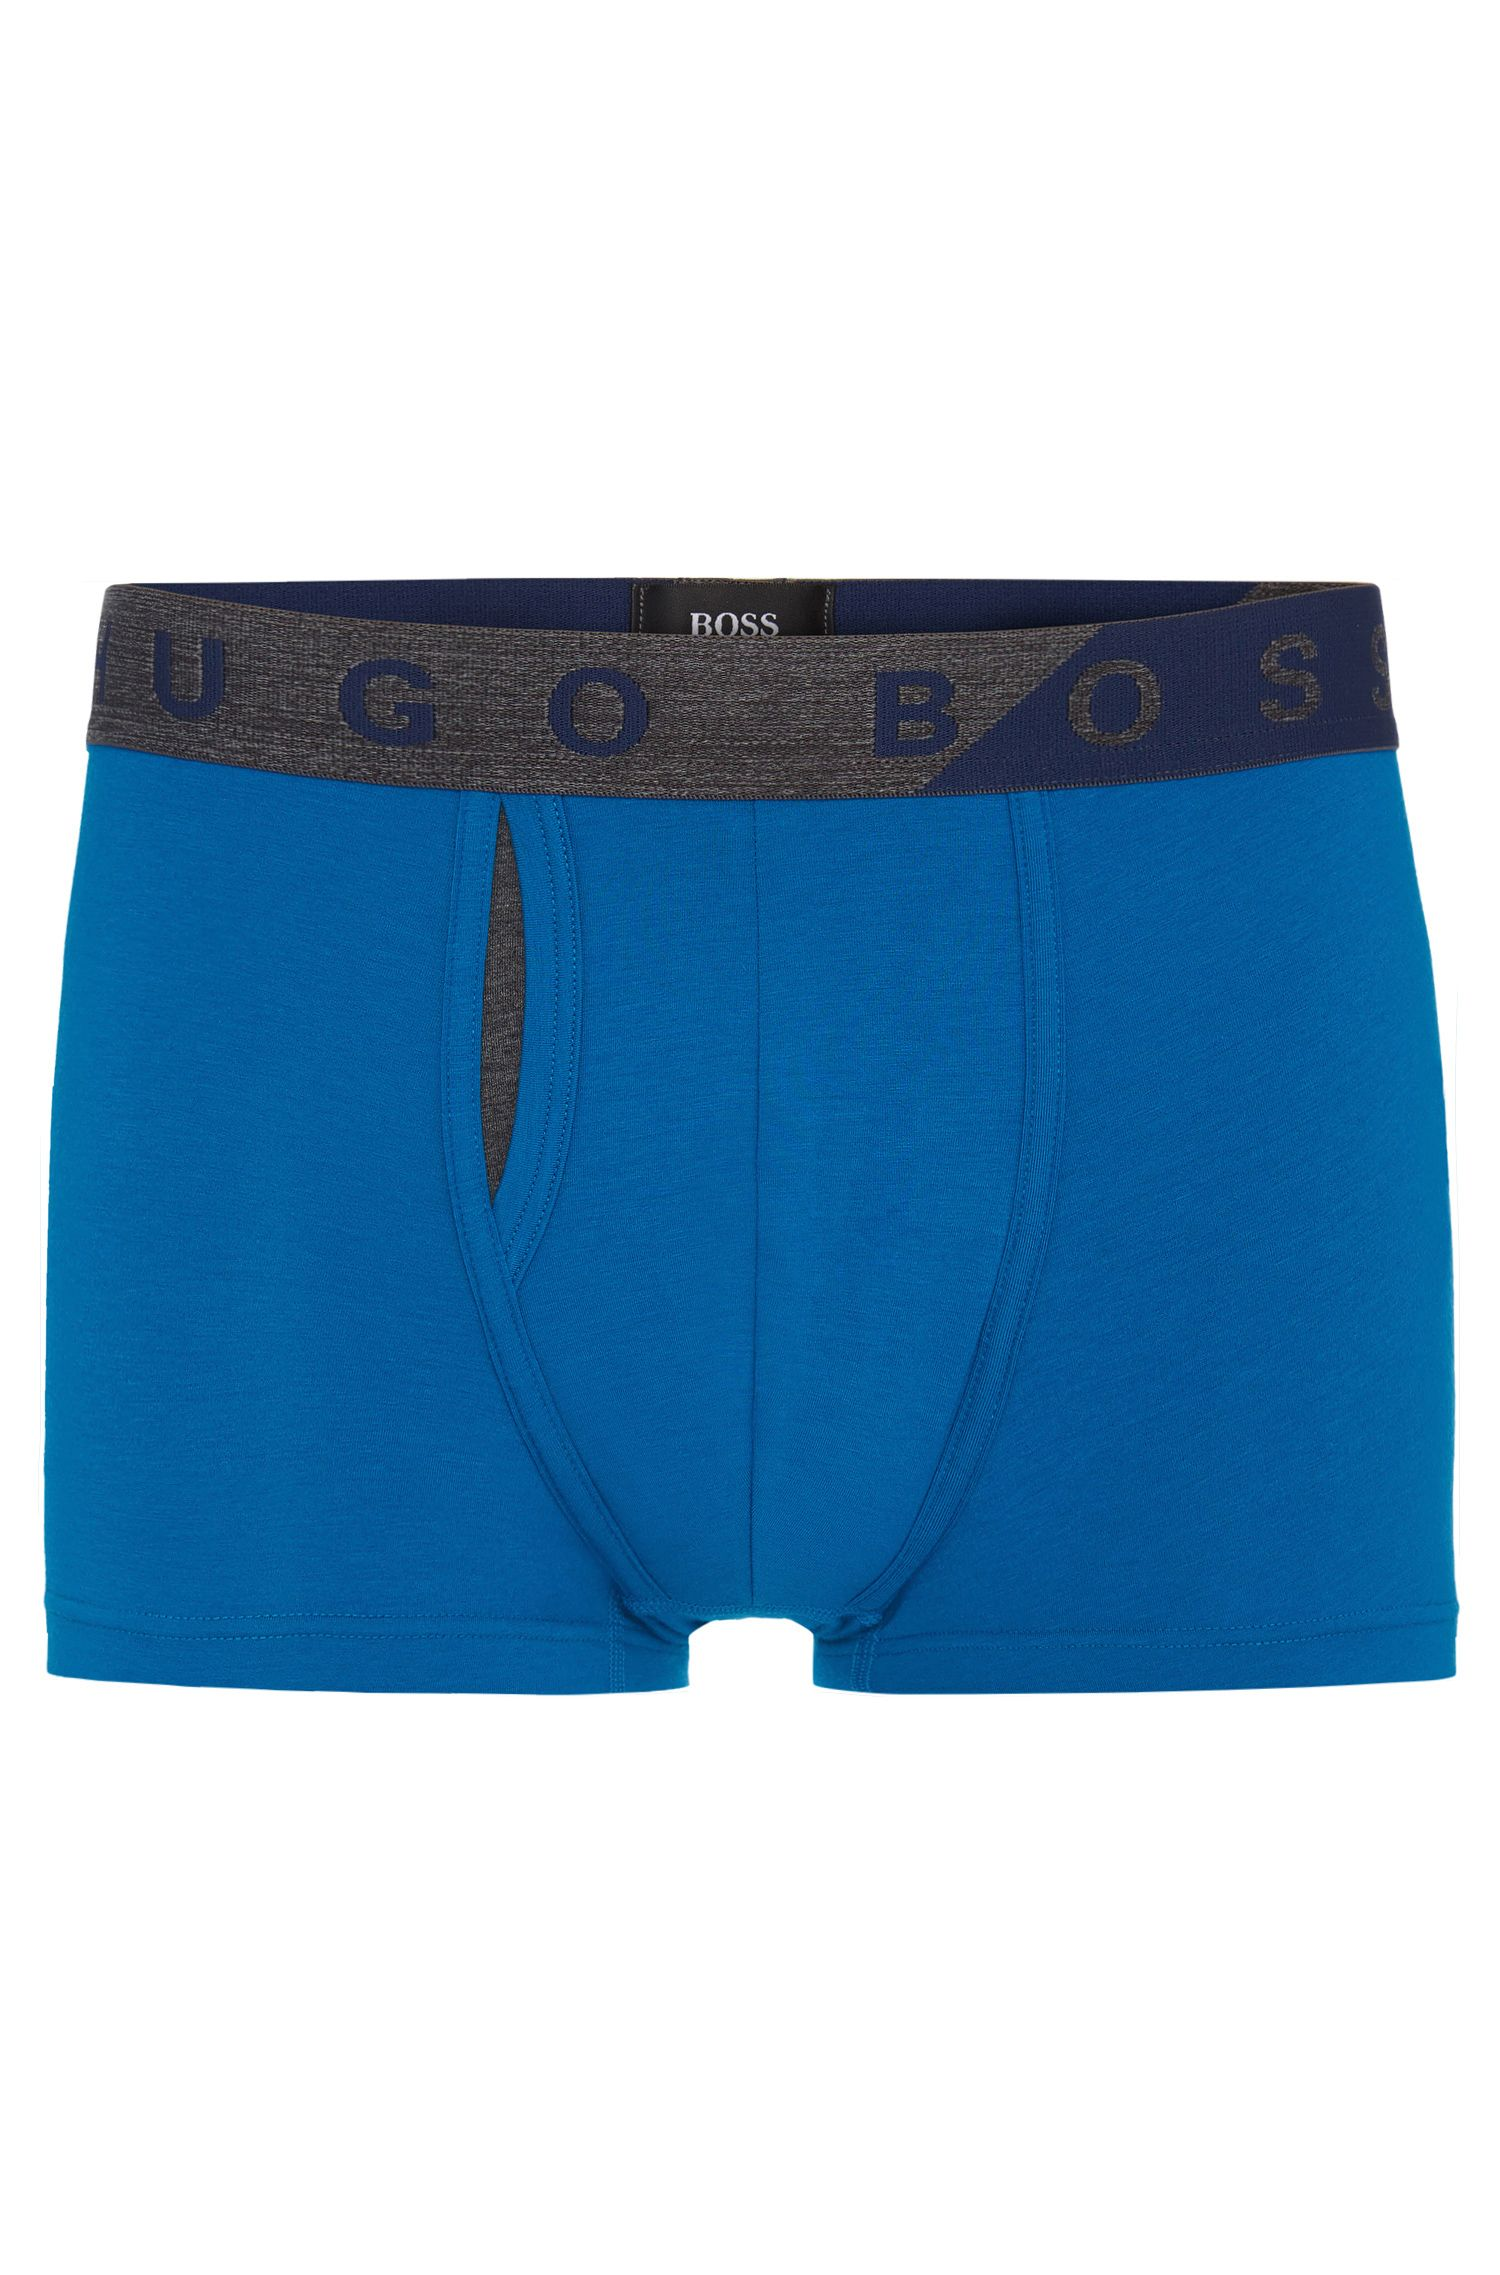 Stretch Cotton Modal Trunk | Trunk Comfort